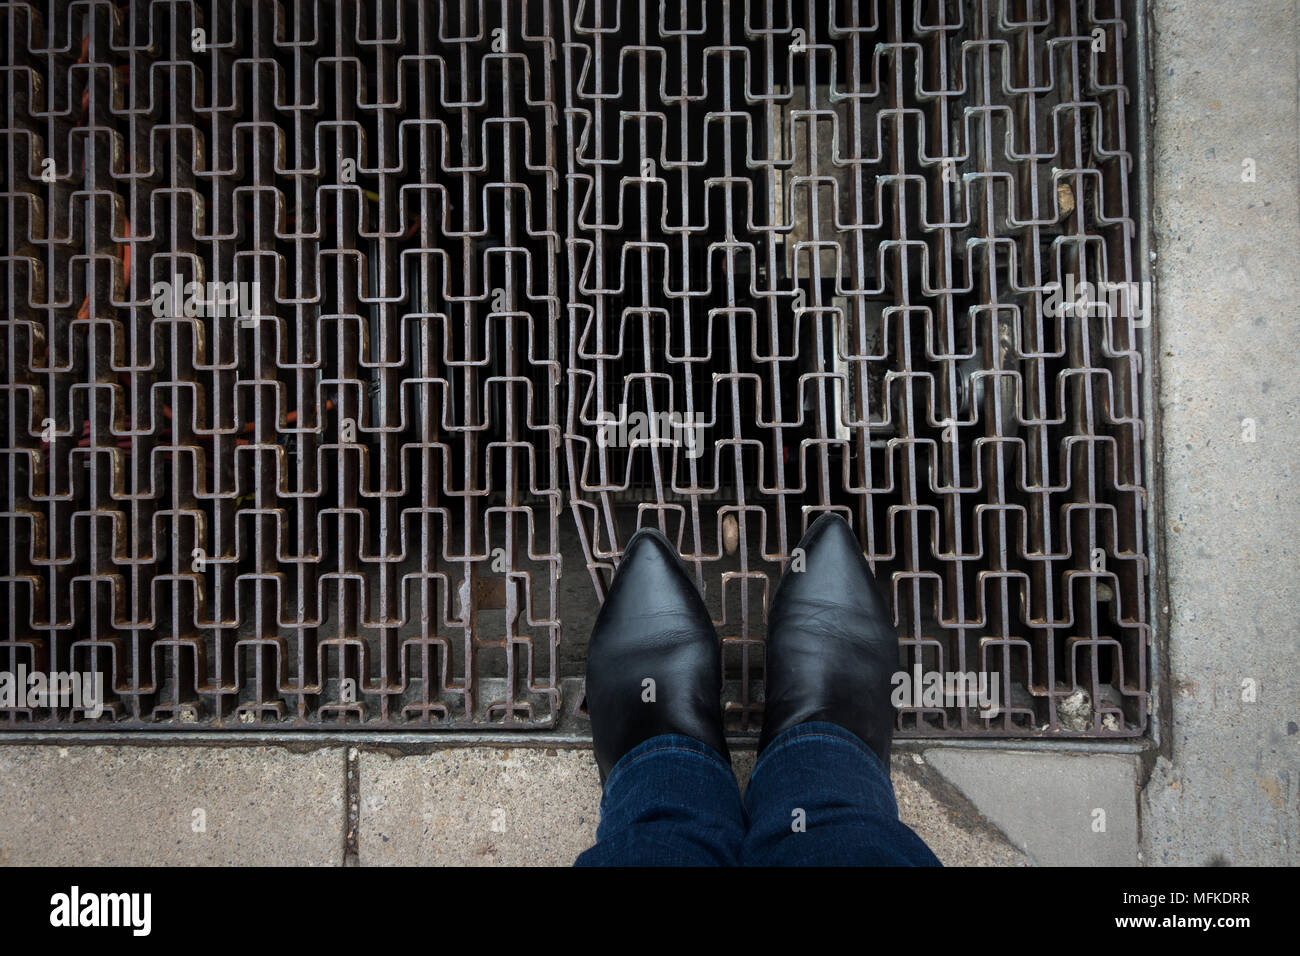 A person wearing pointy toed boots standing on a sidewalk grate - Stock Image